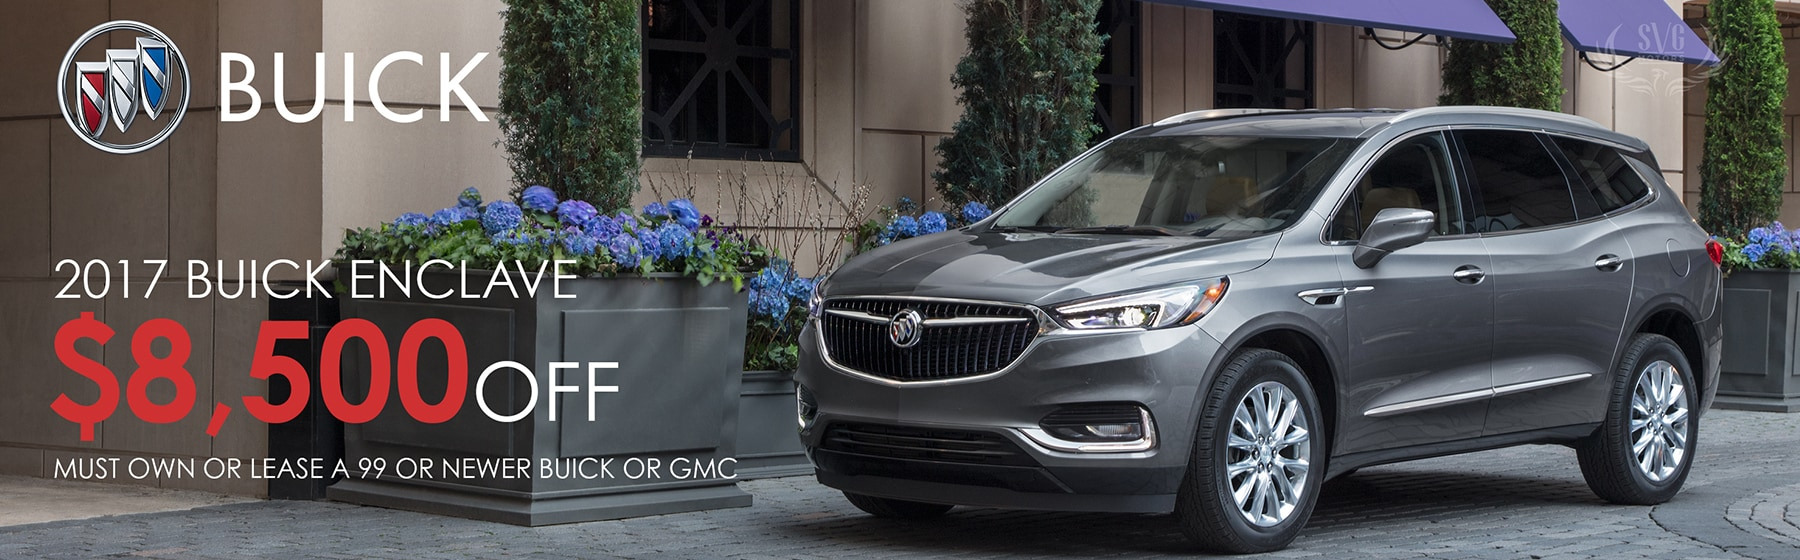 articles price suv enclave buick bestcarmag com informations photos makes